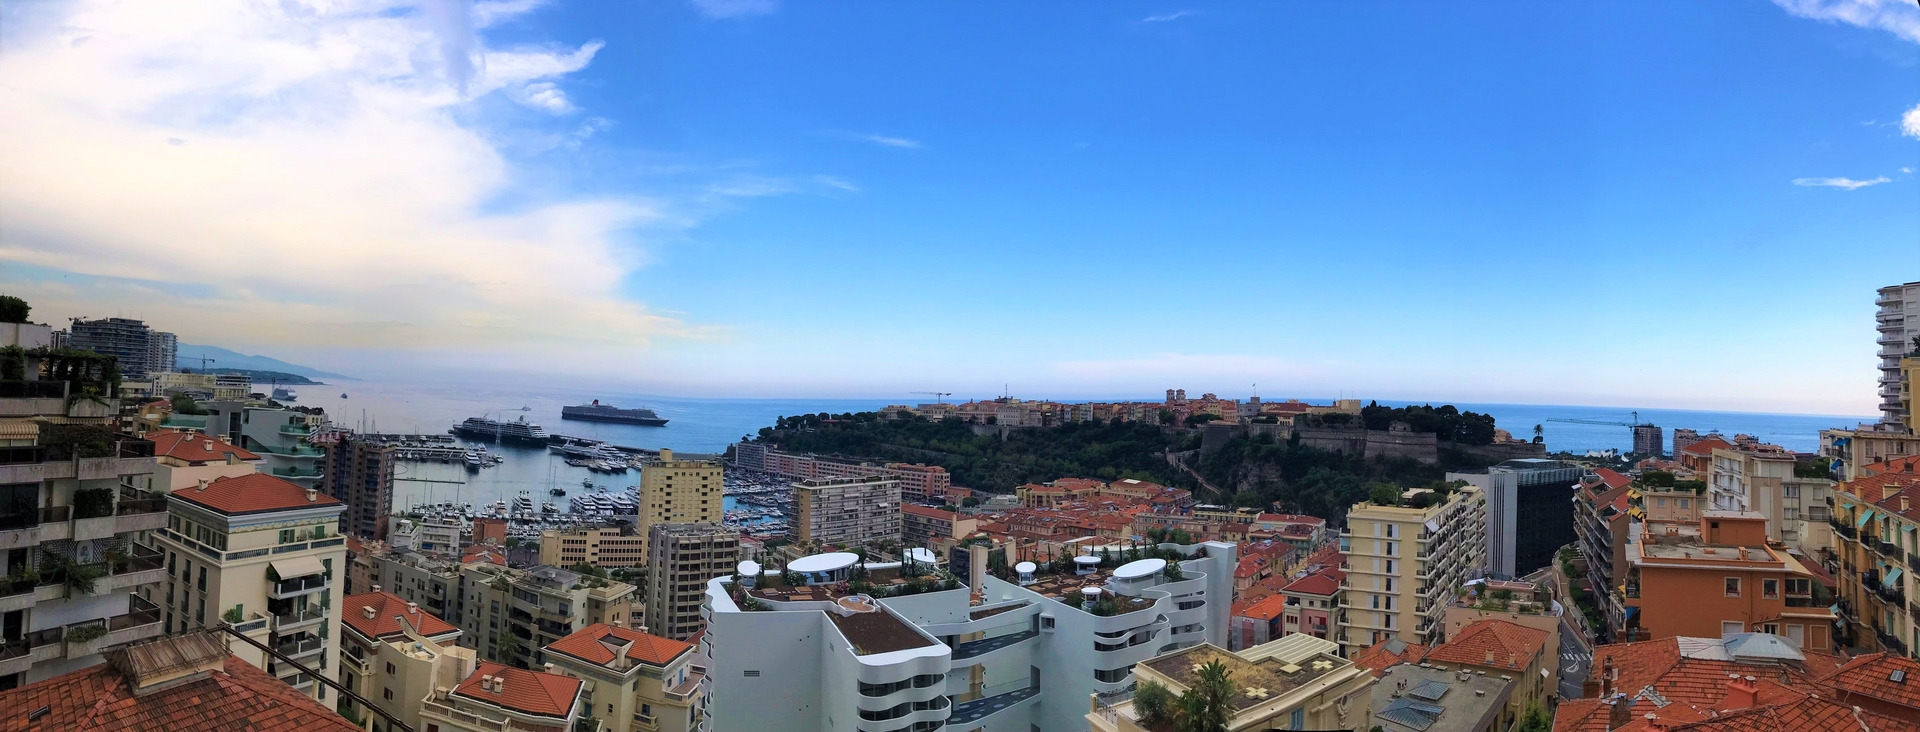 2 ROOMS MAGNIFICENT VIEW HERCULE HARBOUR MIXED USE WITH PARKING - Offices for sale in Monaco